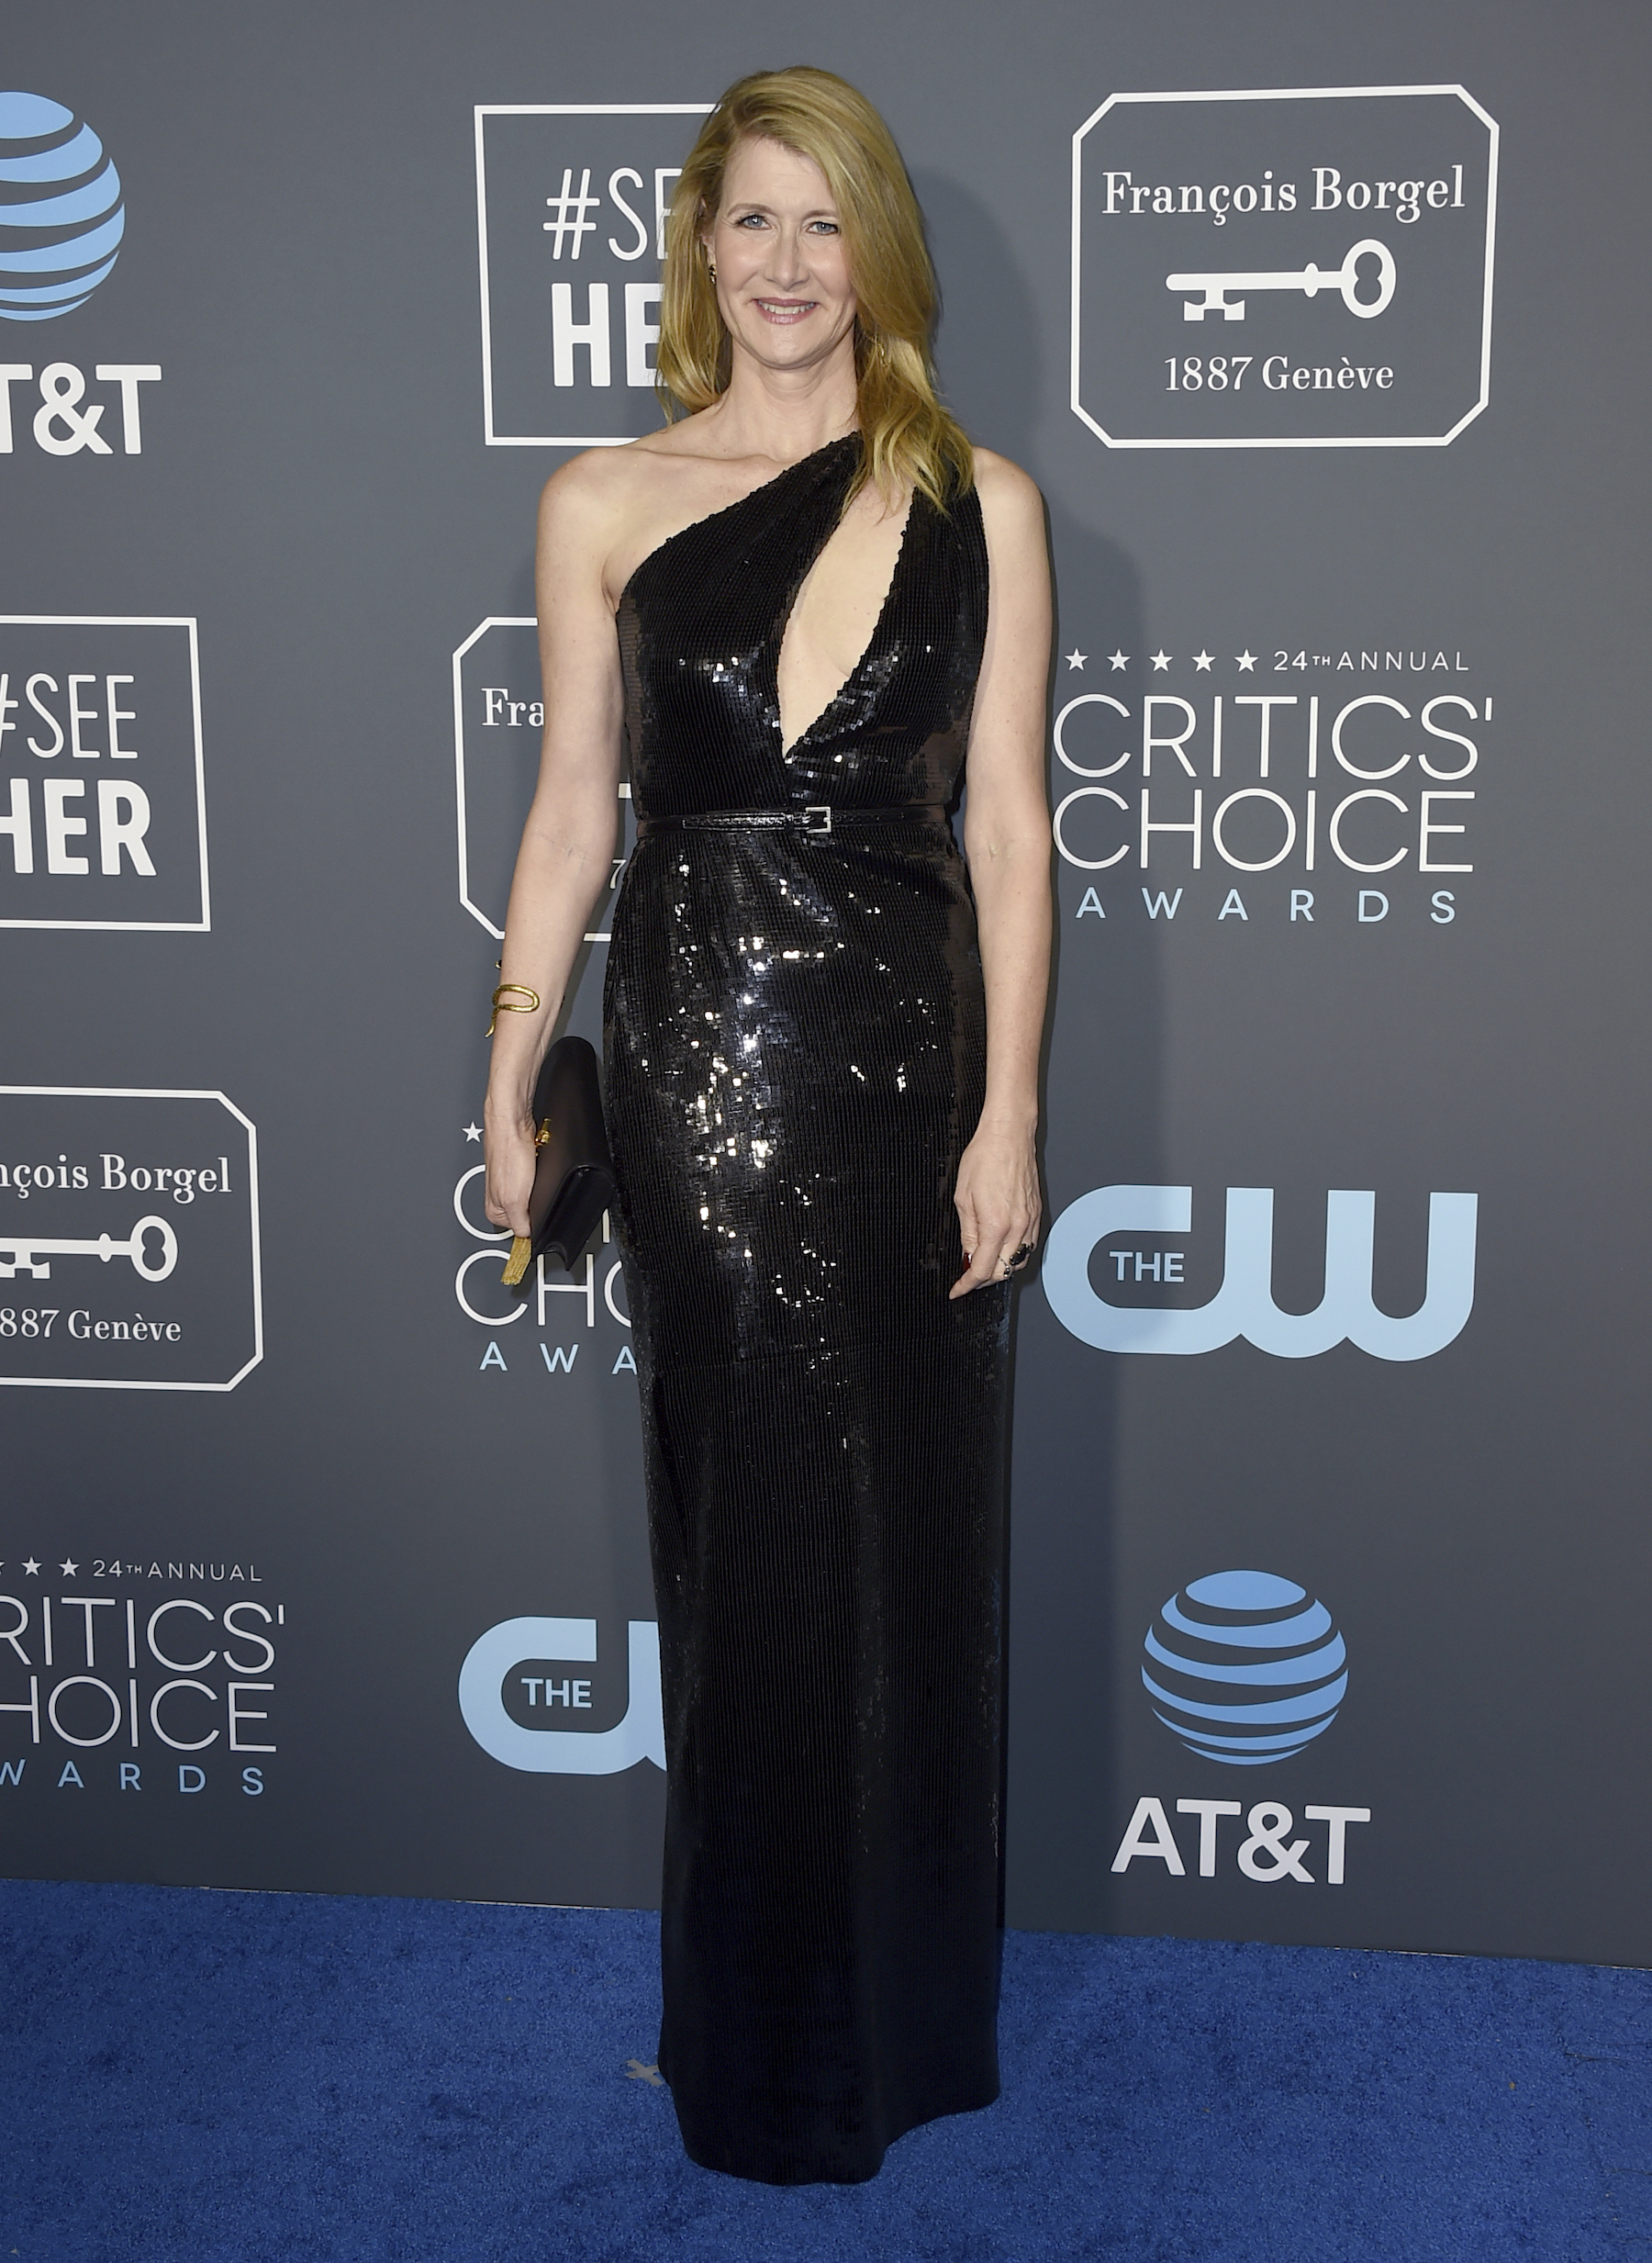 <div class='meta'><div class='origin-logo' data-origin='AP'></div><span class='caption-text' data-credit='Jordan Strauss/Invision/AP'>Laura Dern arrives at the 24th annual Critics' Choice Awards on Sunday, Jan. 13, 2019, at the Barker Hangar in Santa Monica, Calif.</span></div>